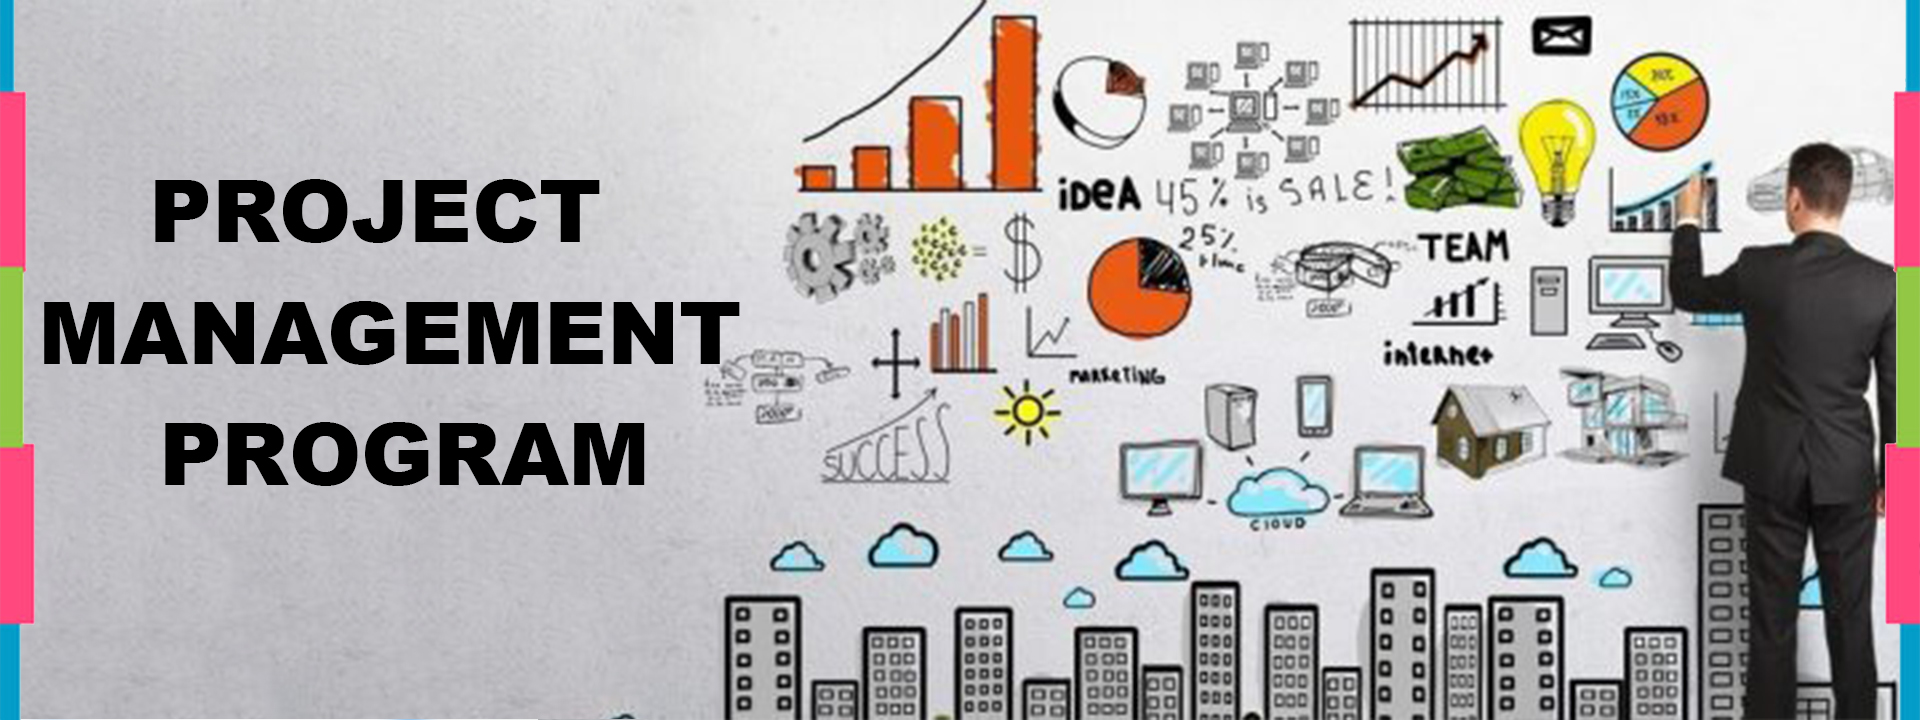 Project Management Program